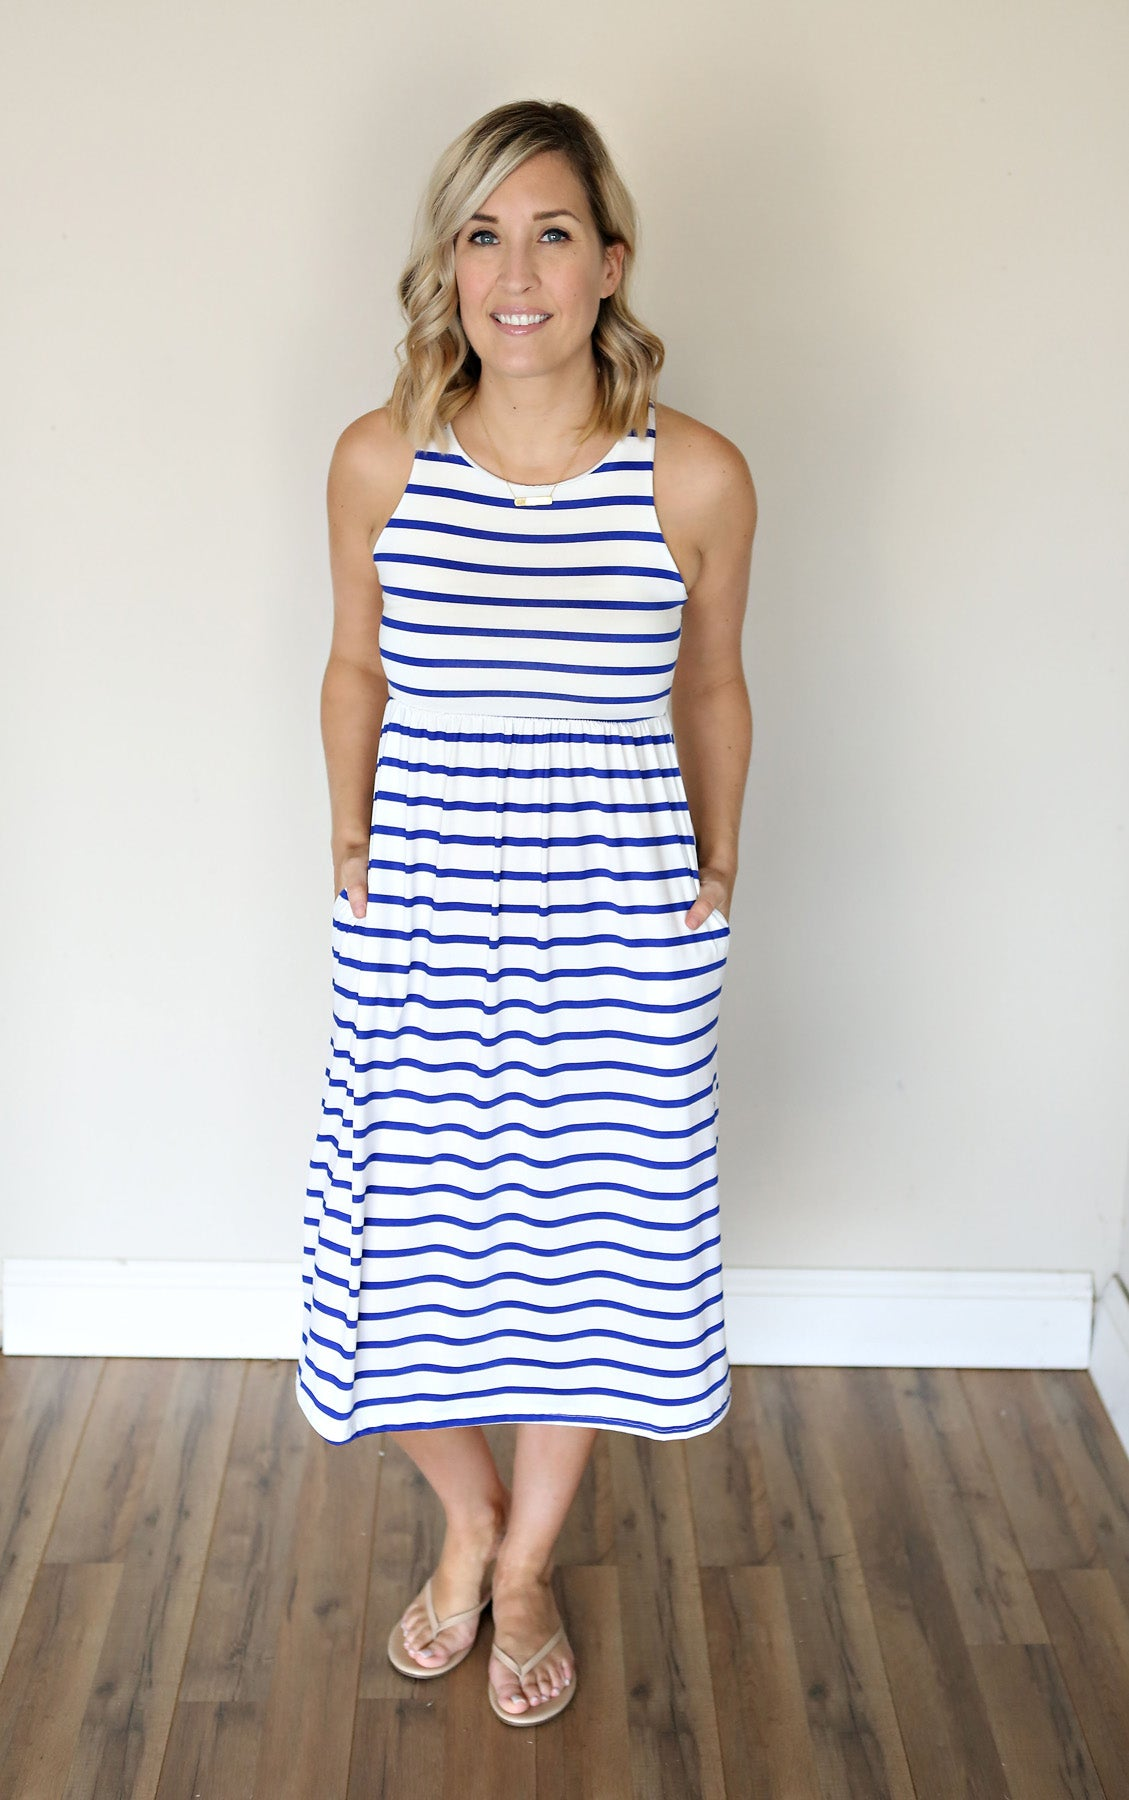 Huntley Striped Dress - Royal Blue - Gray Monroe